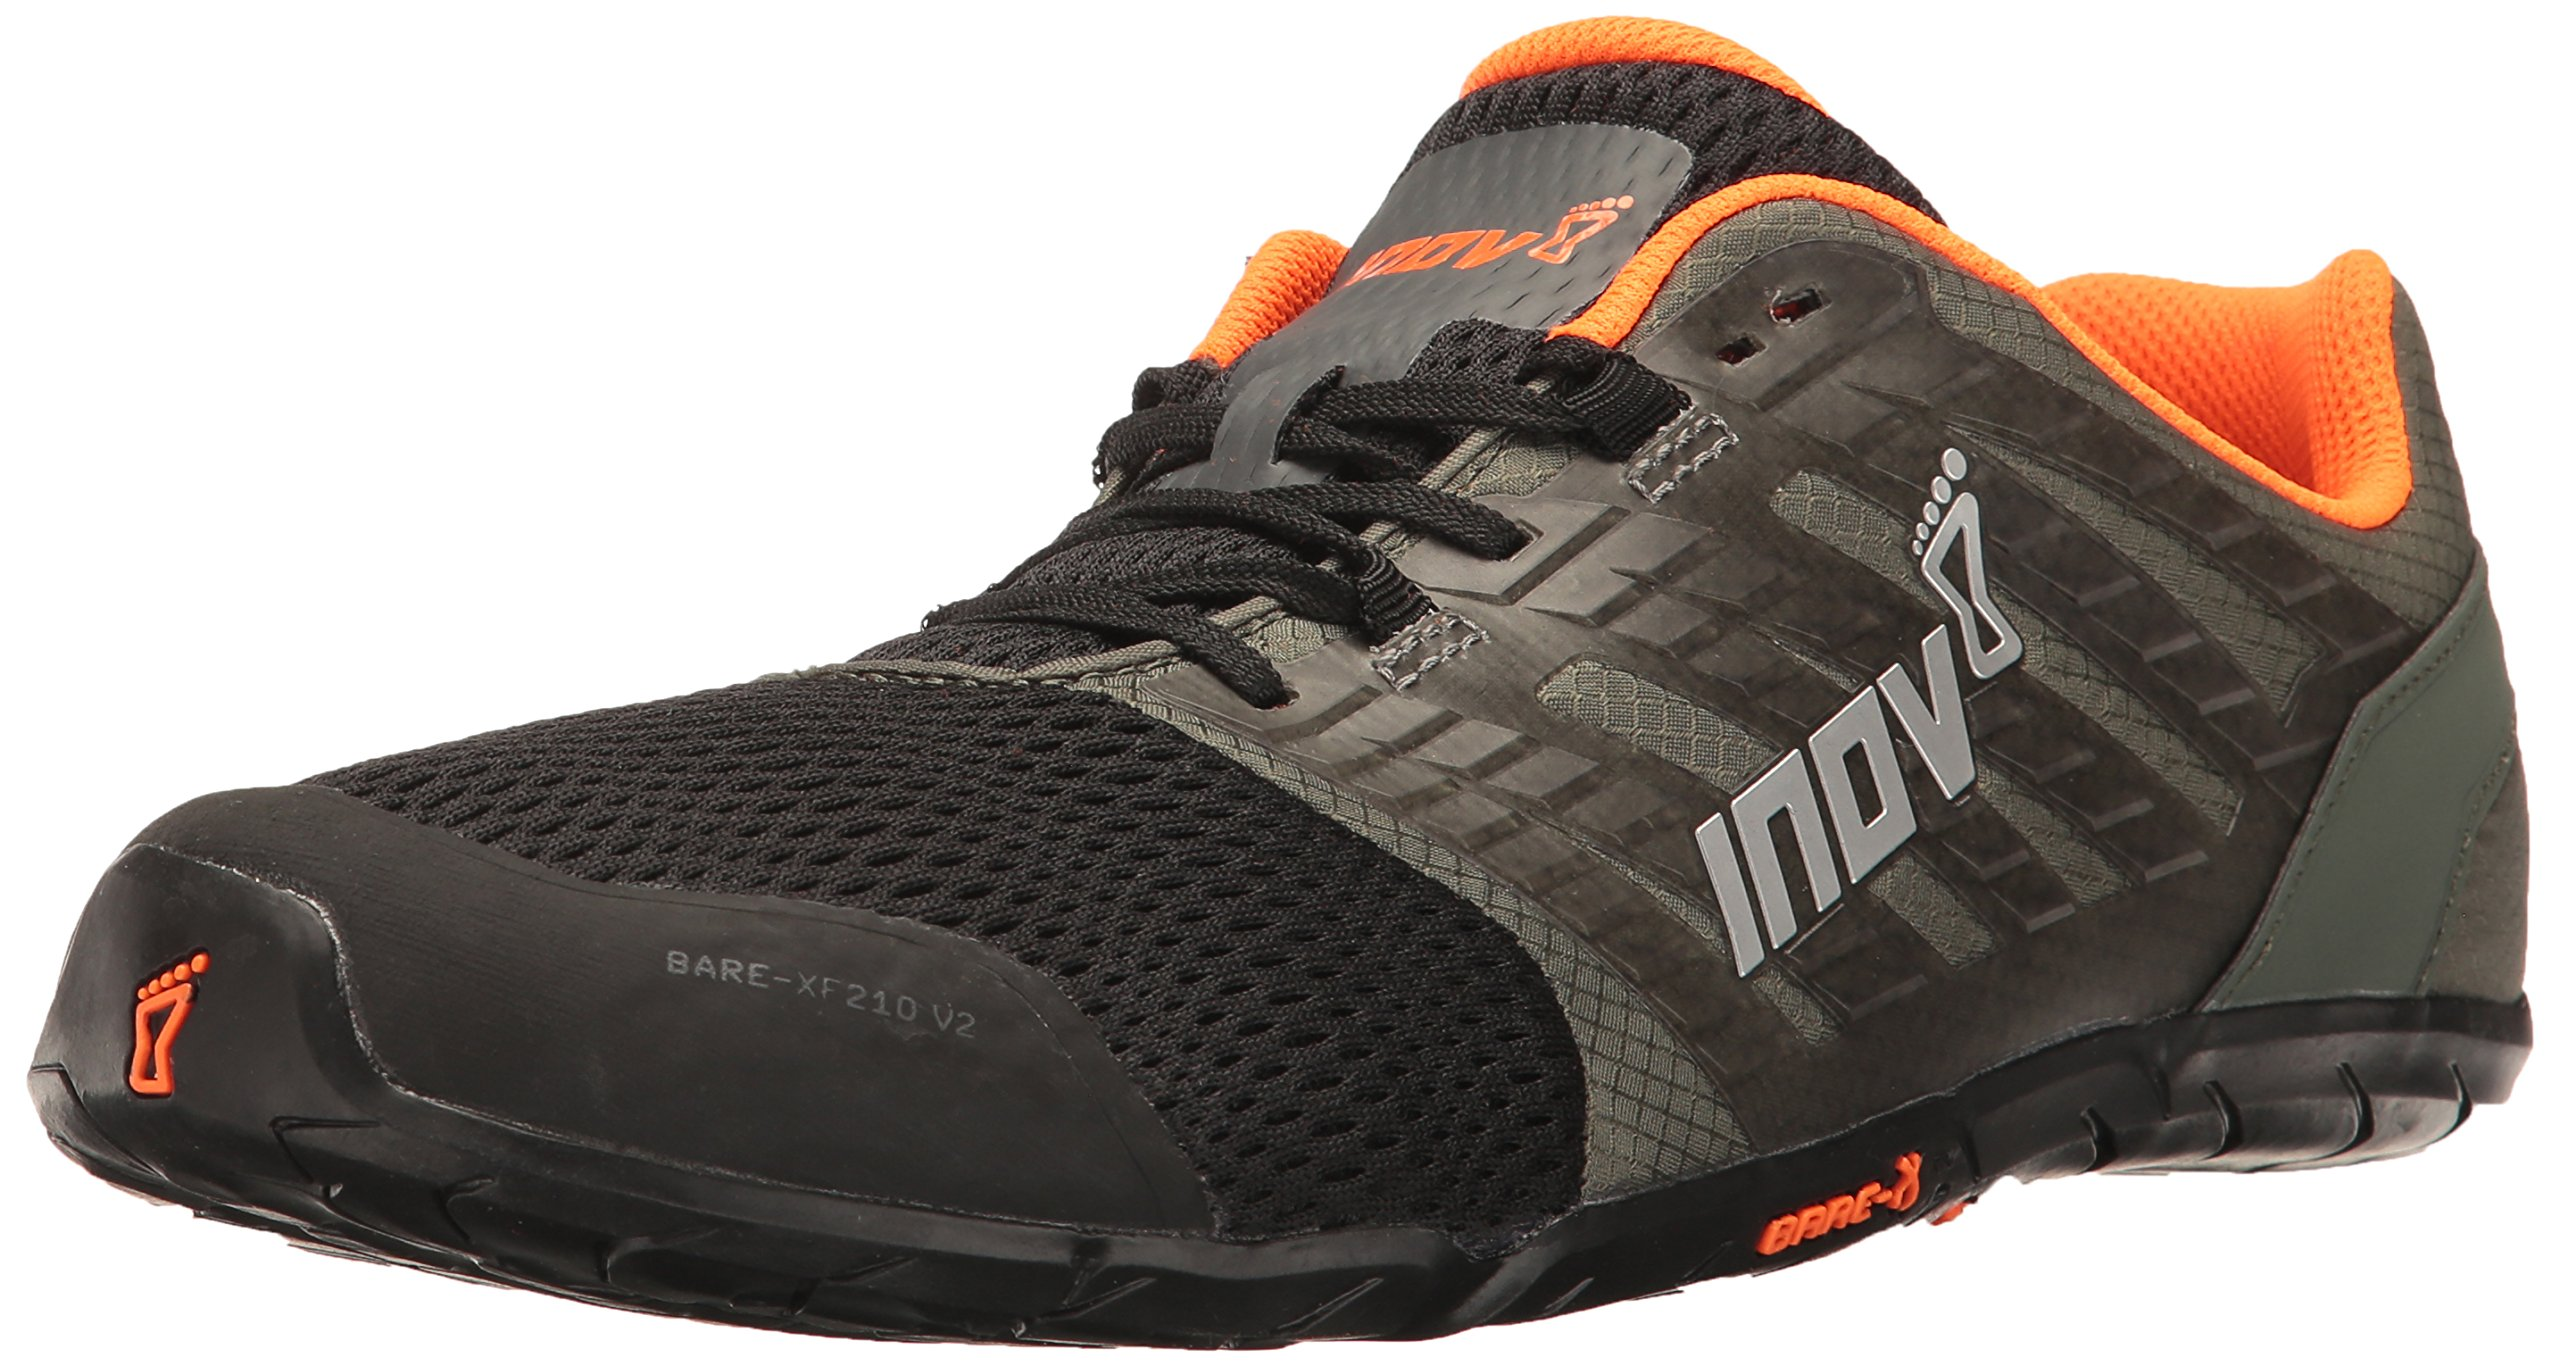 Inov-8 Men's Bare-XF 210 v2 (M) Cross Trainer Grey/Black/Orange 9 D US by Inov-8 (Image #1)